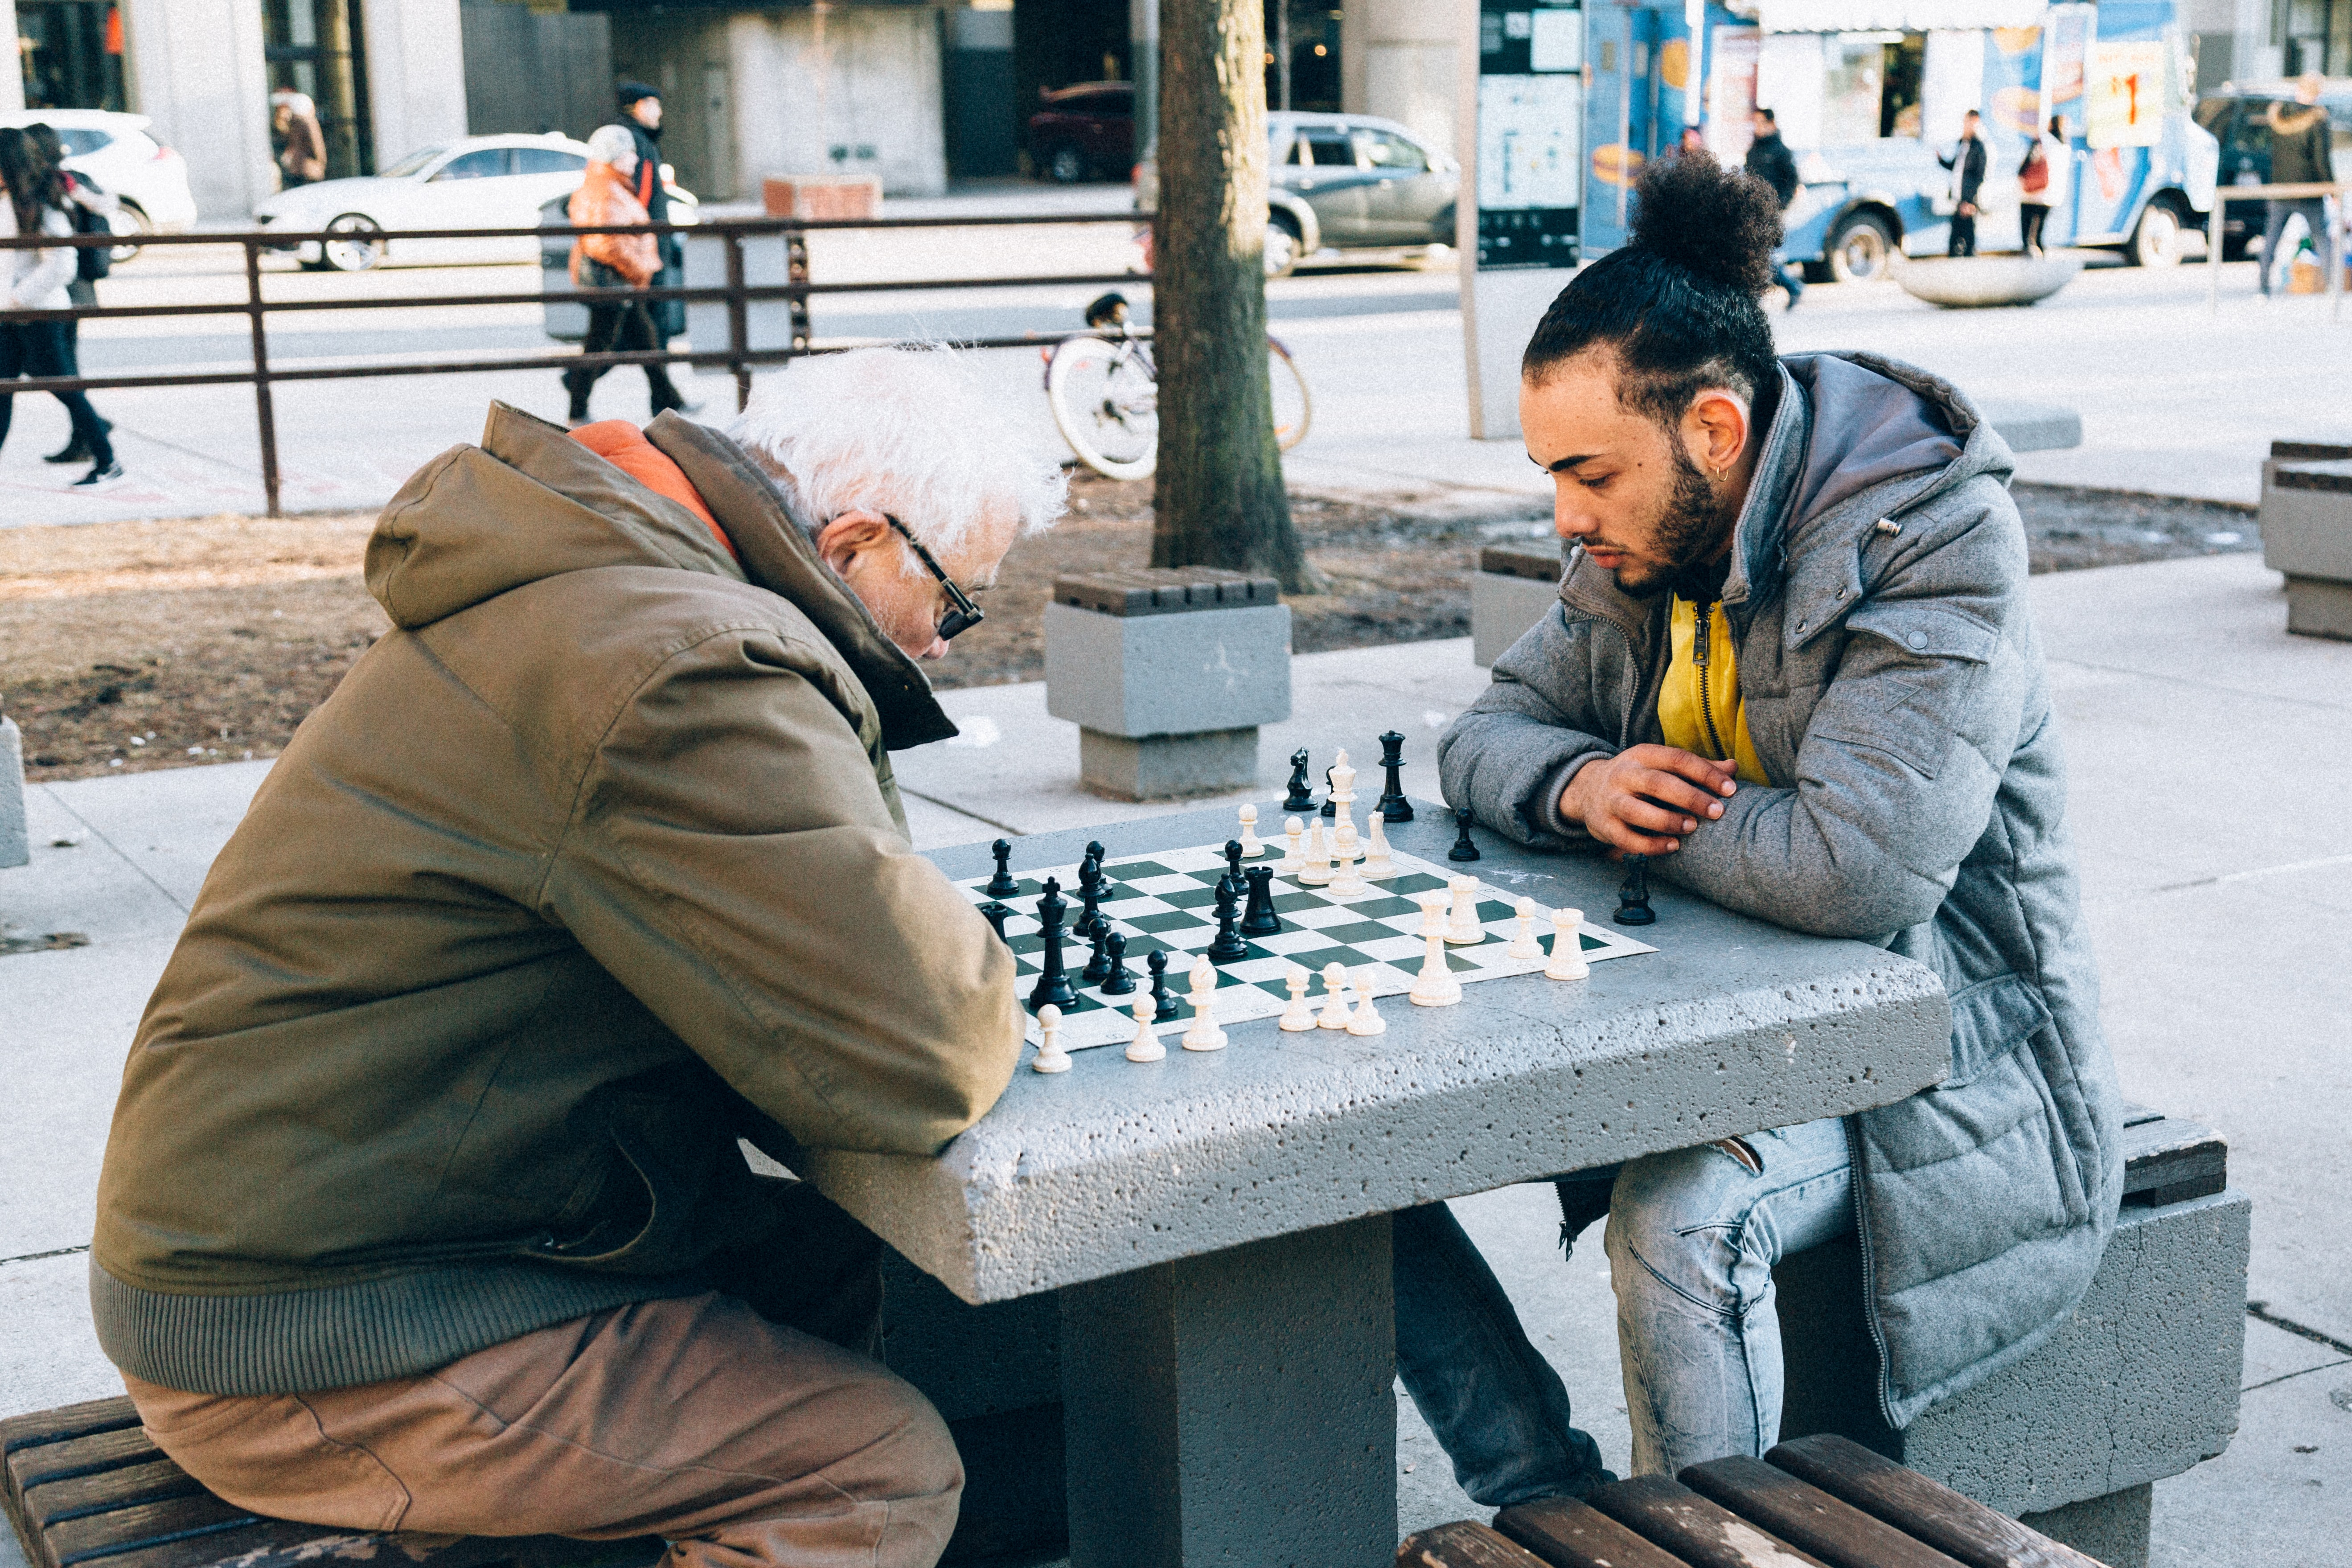 people playing chessboard game outdoor